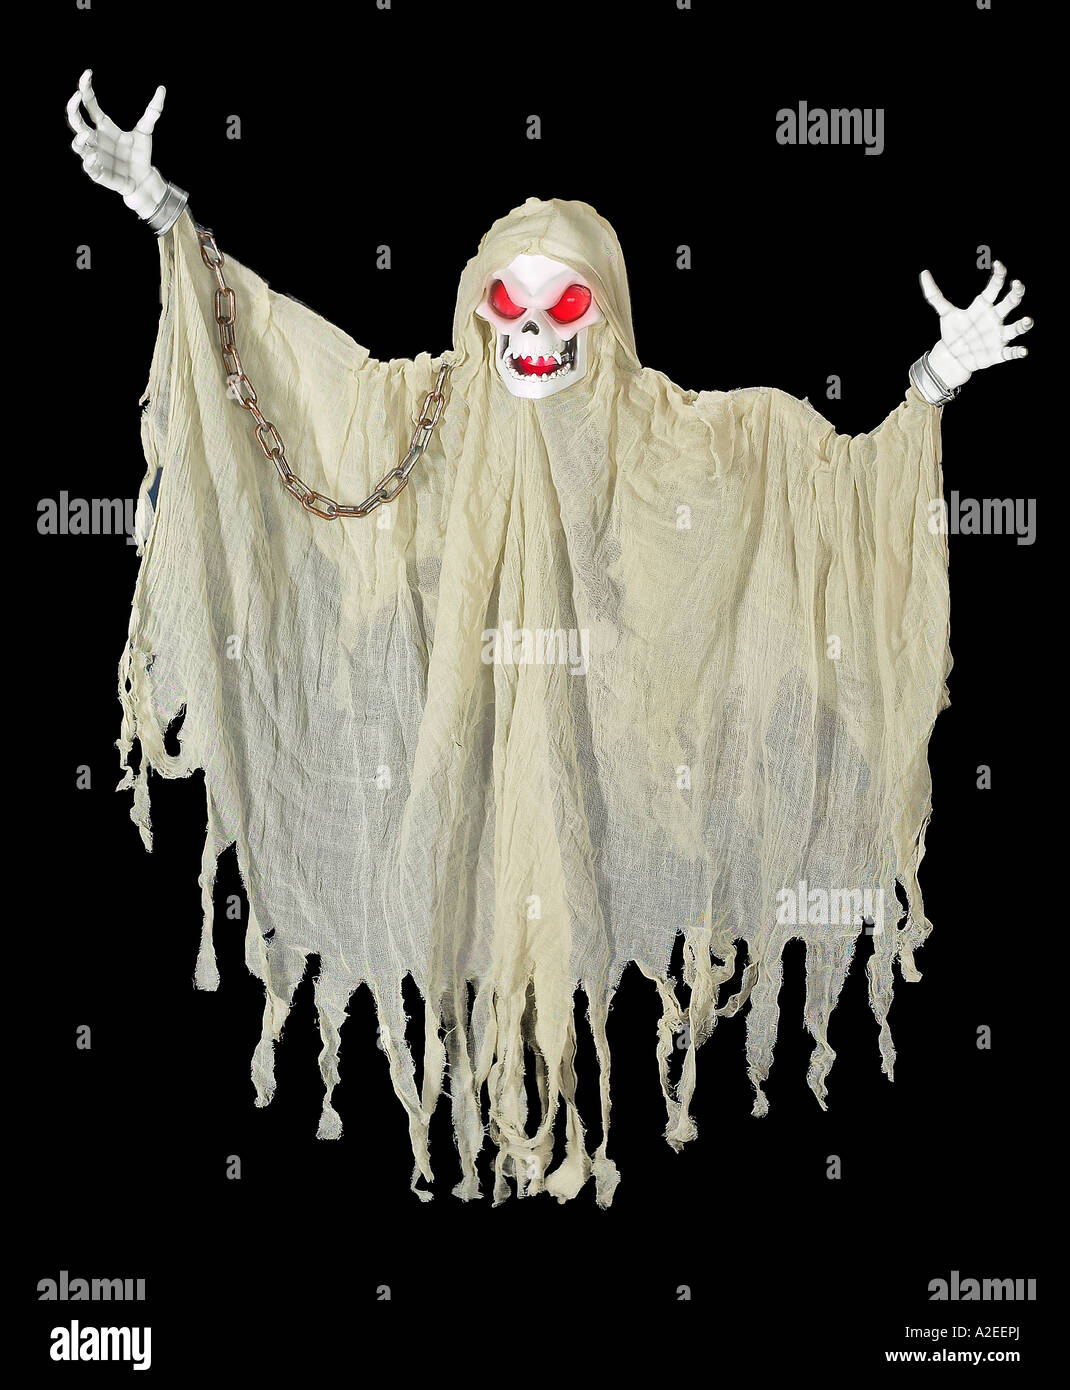 Ghost Ghoul Demon Haunting The Night Of Halloween - Stock Image